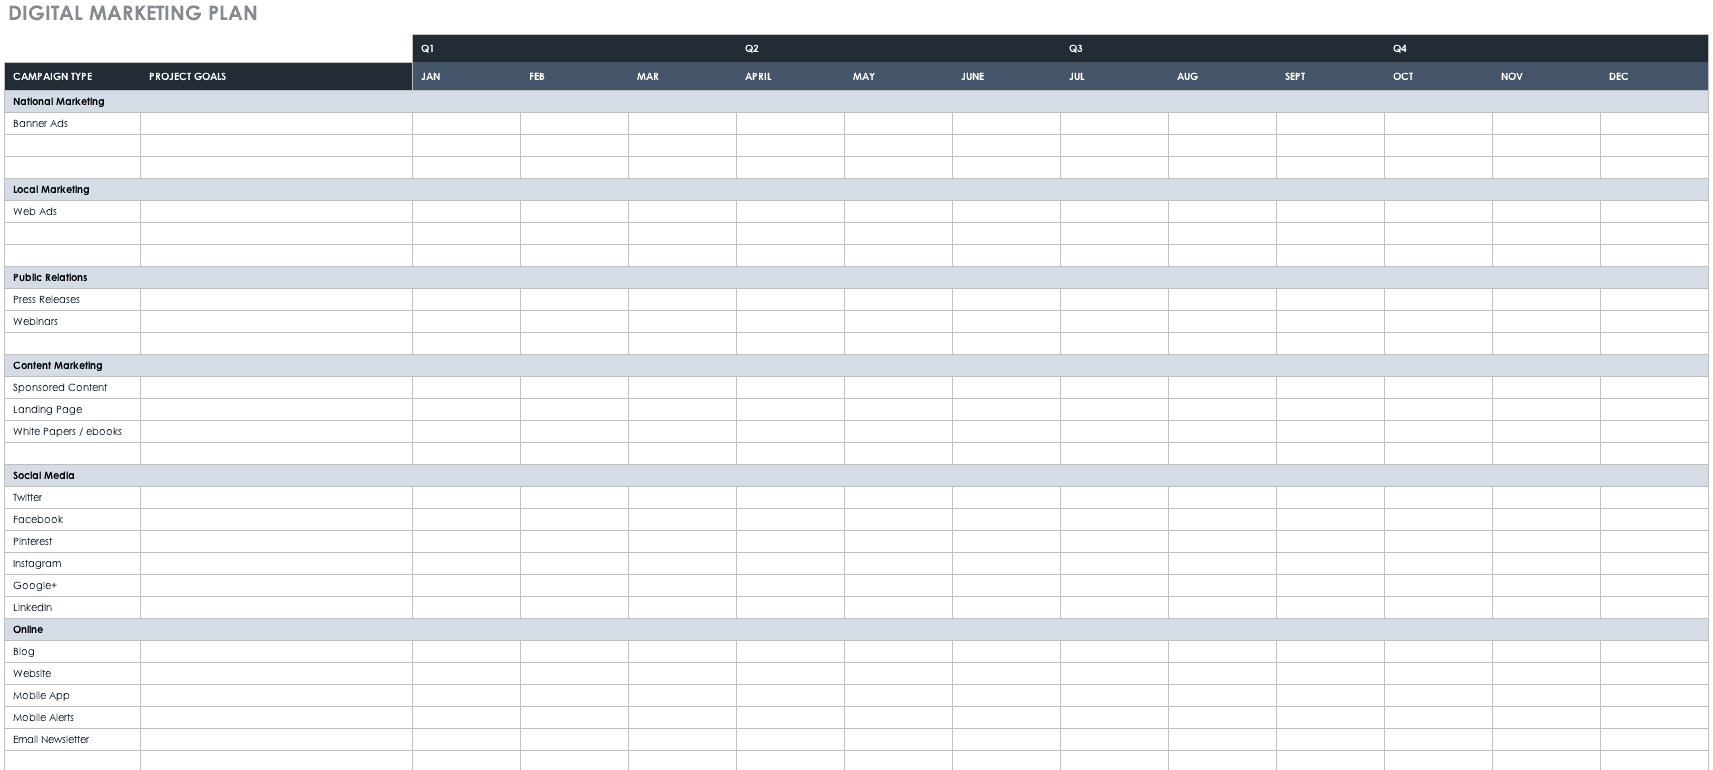 Free Marketing Plan Templates For Excel Smartsheet - Marketing campaign schedule template